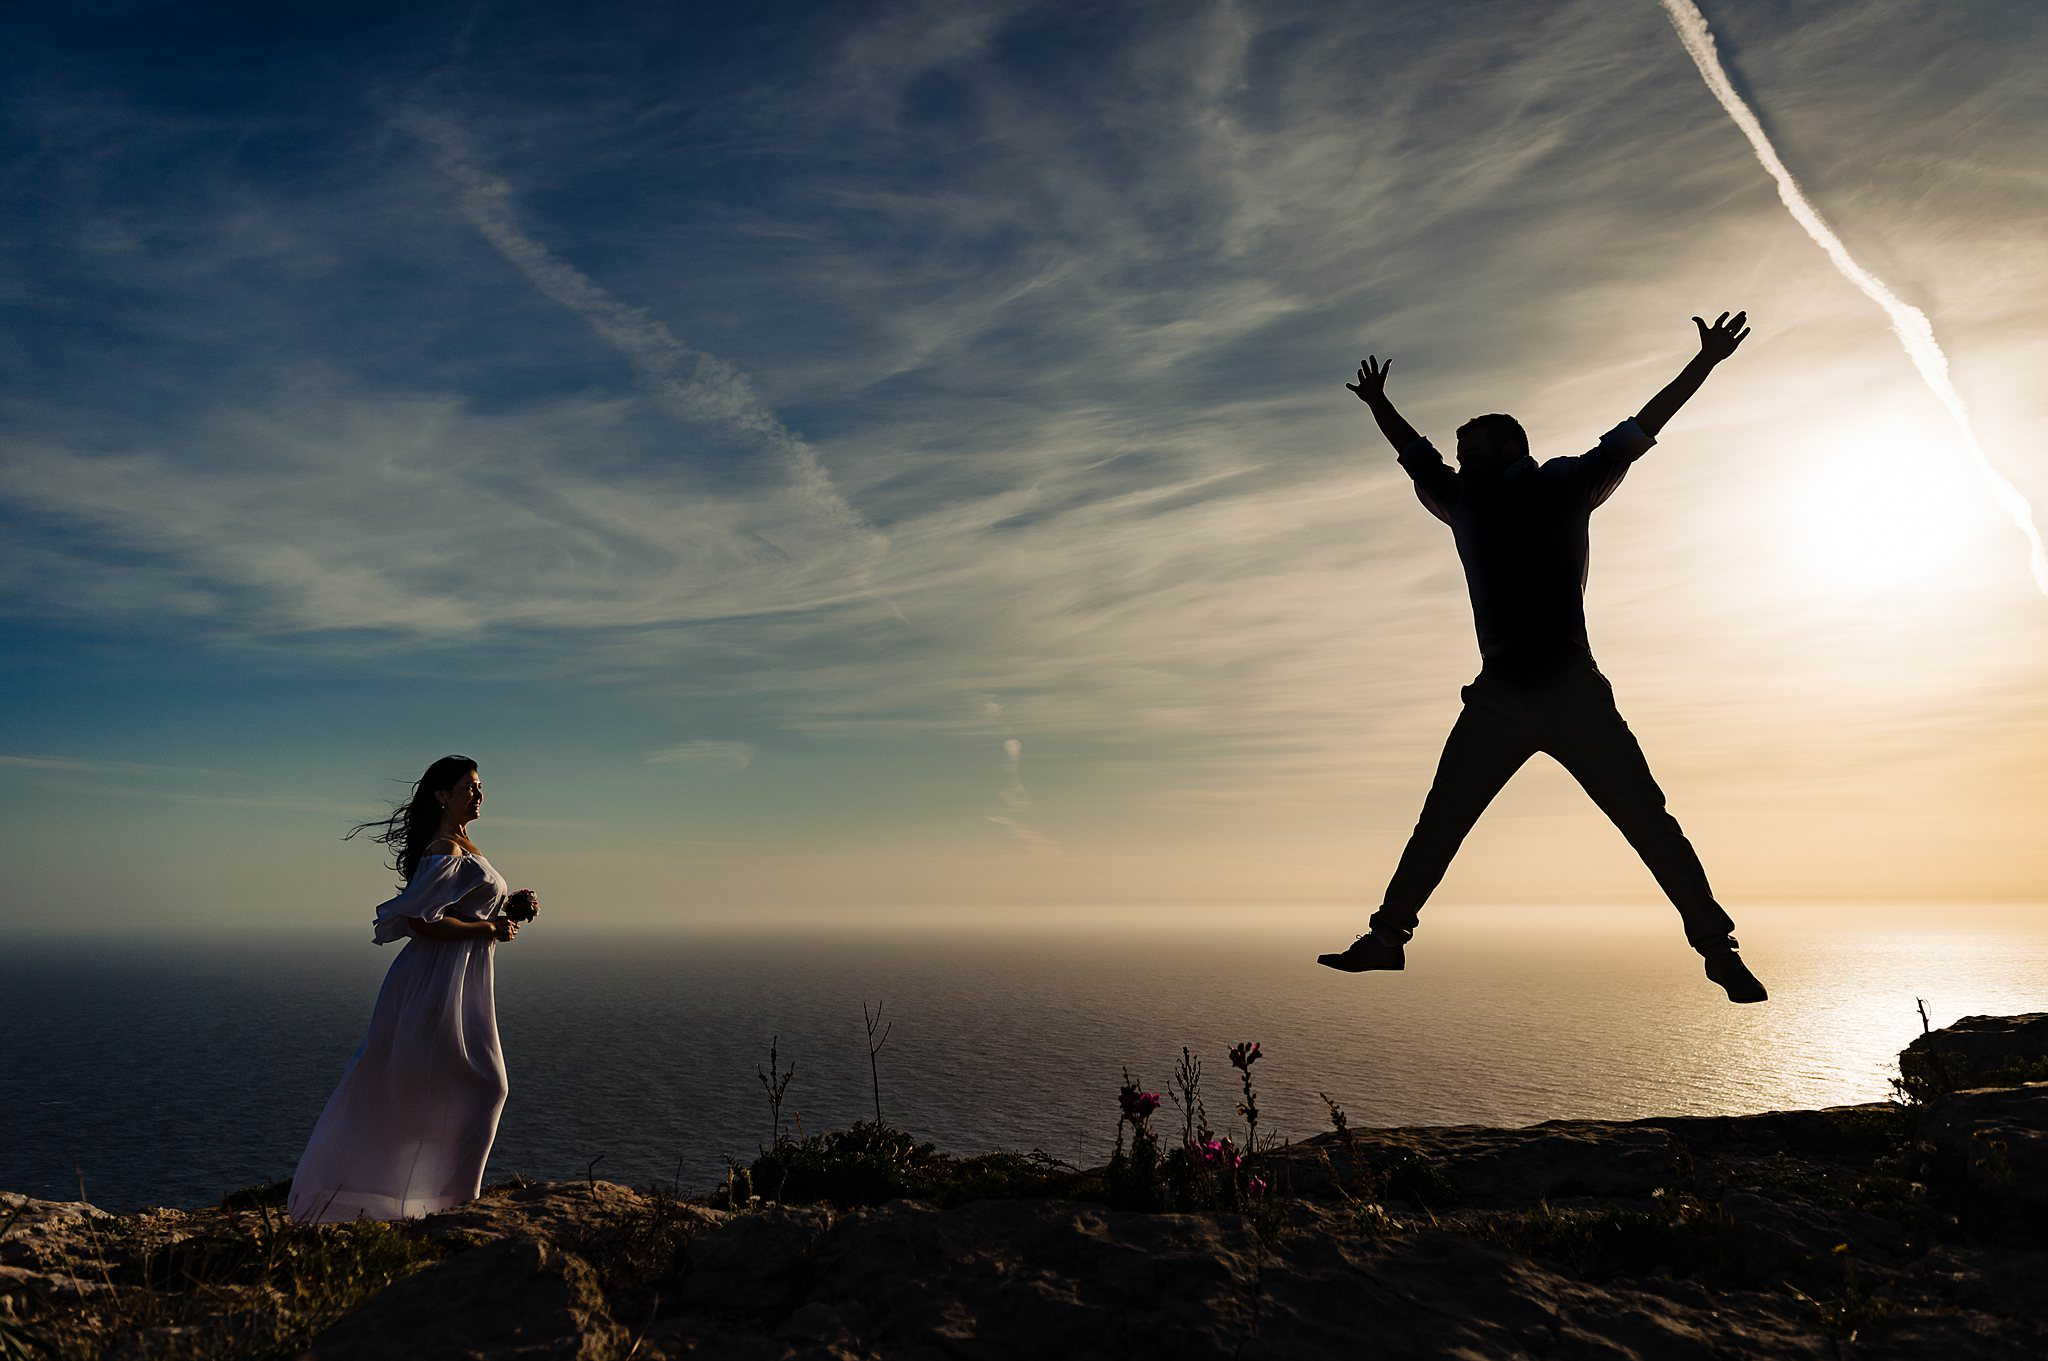 groom jumping in the air to entertain bride during portraits- photo by Shane P Watts Photography